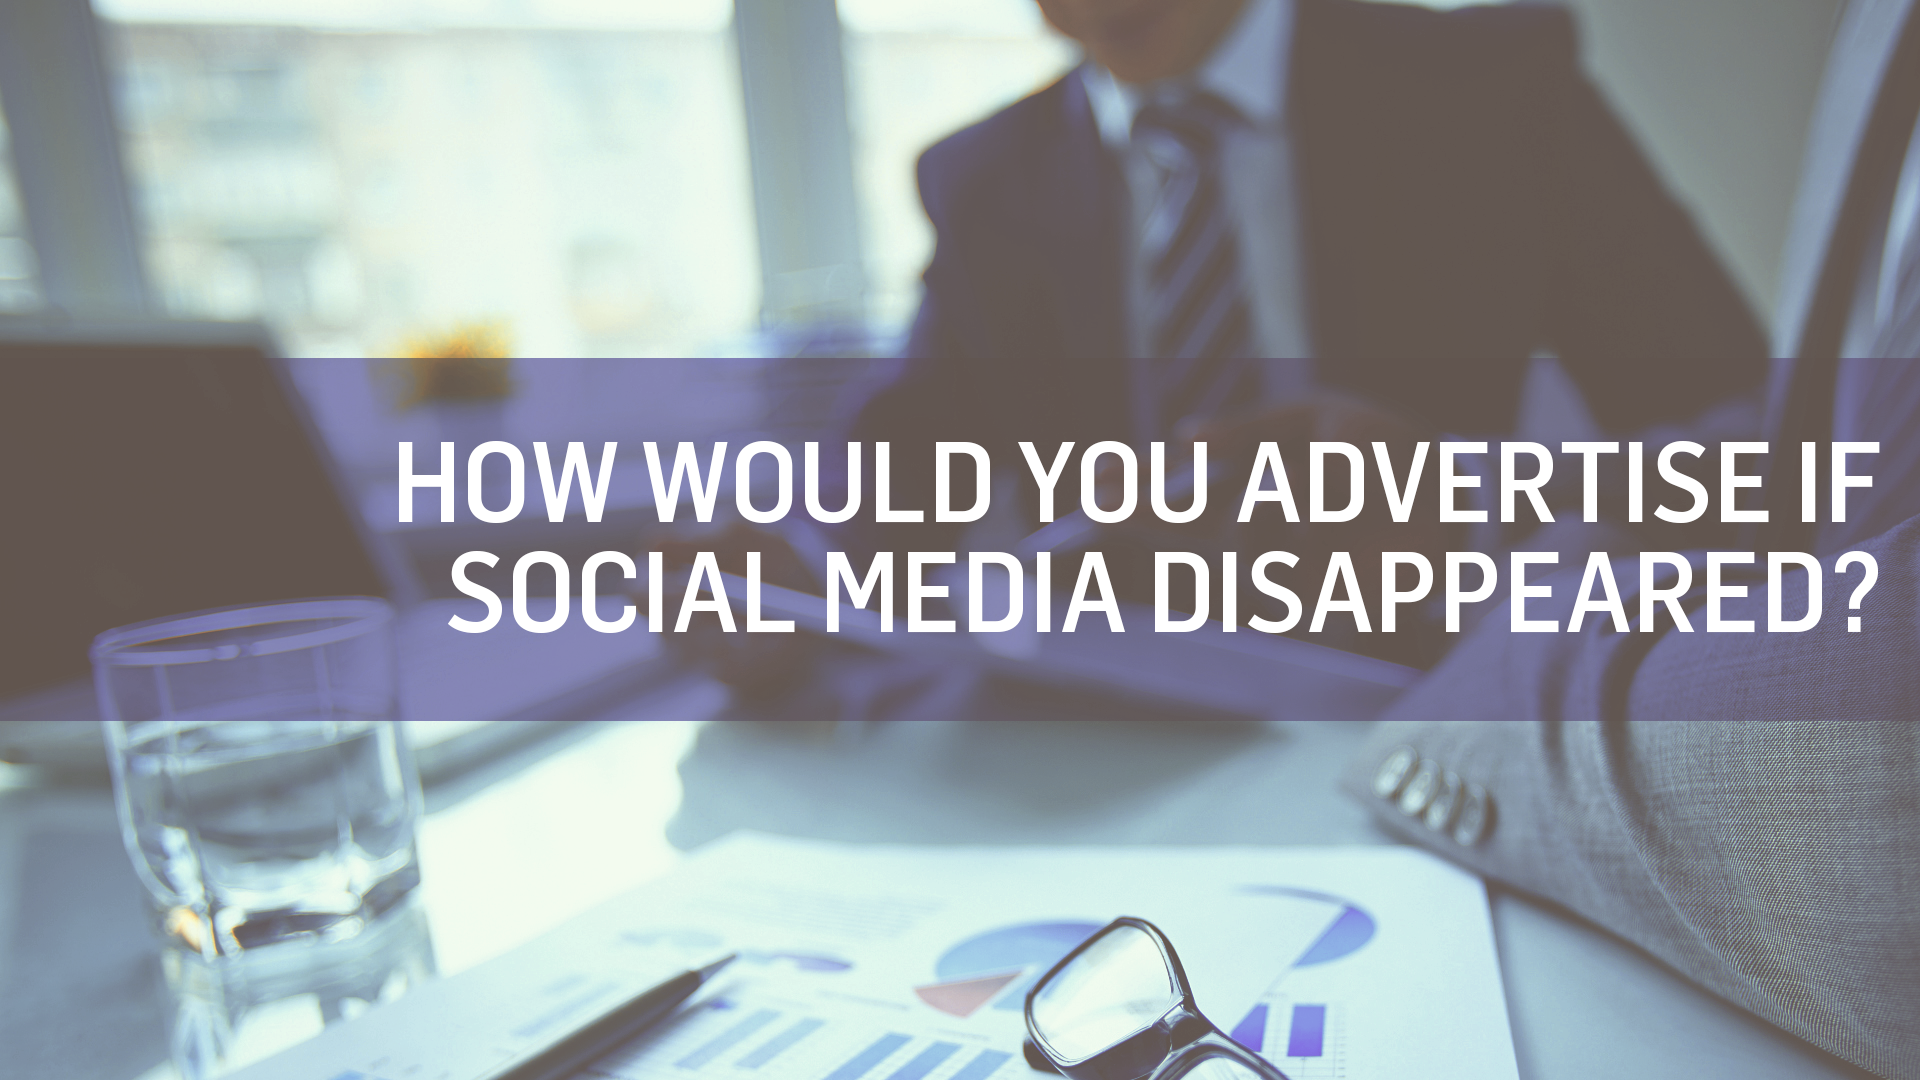 How Would You Advertise Without Social Media?